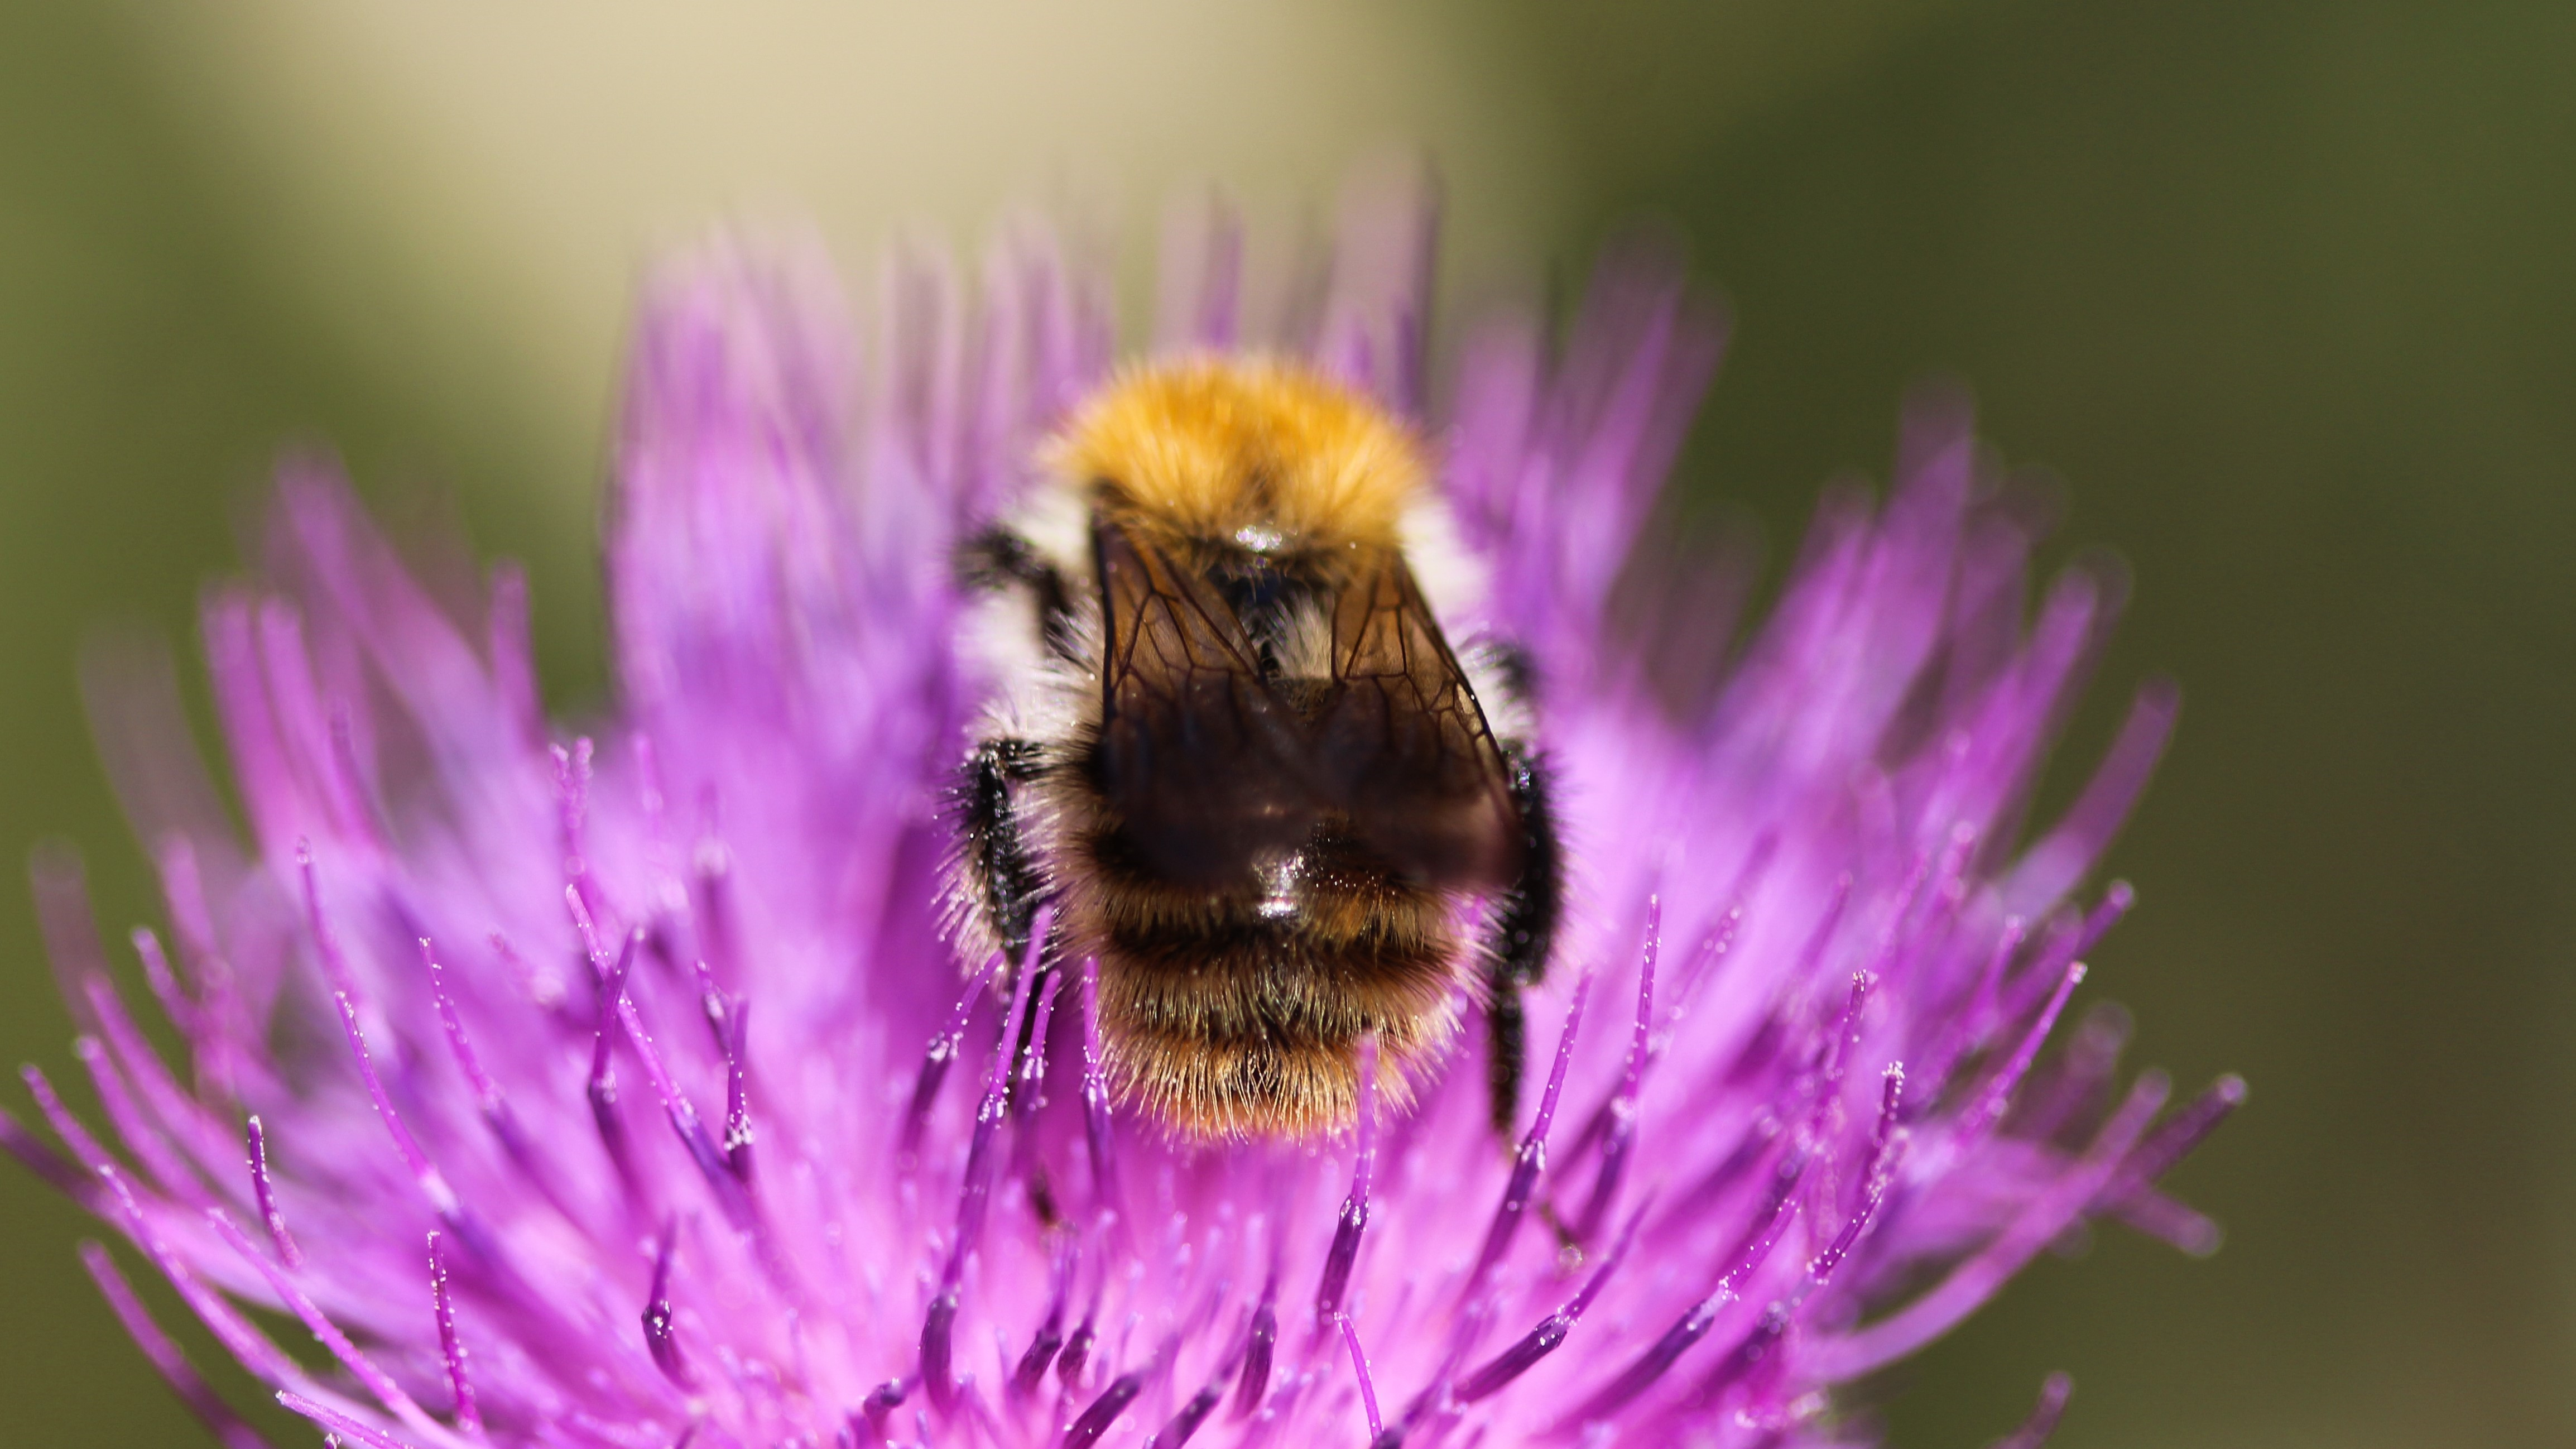 Attract Bees - Attract Bumblebees - Bumblebee - Brown-Banded Carder Bee